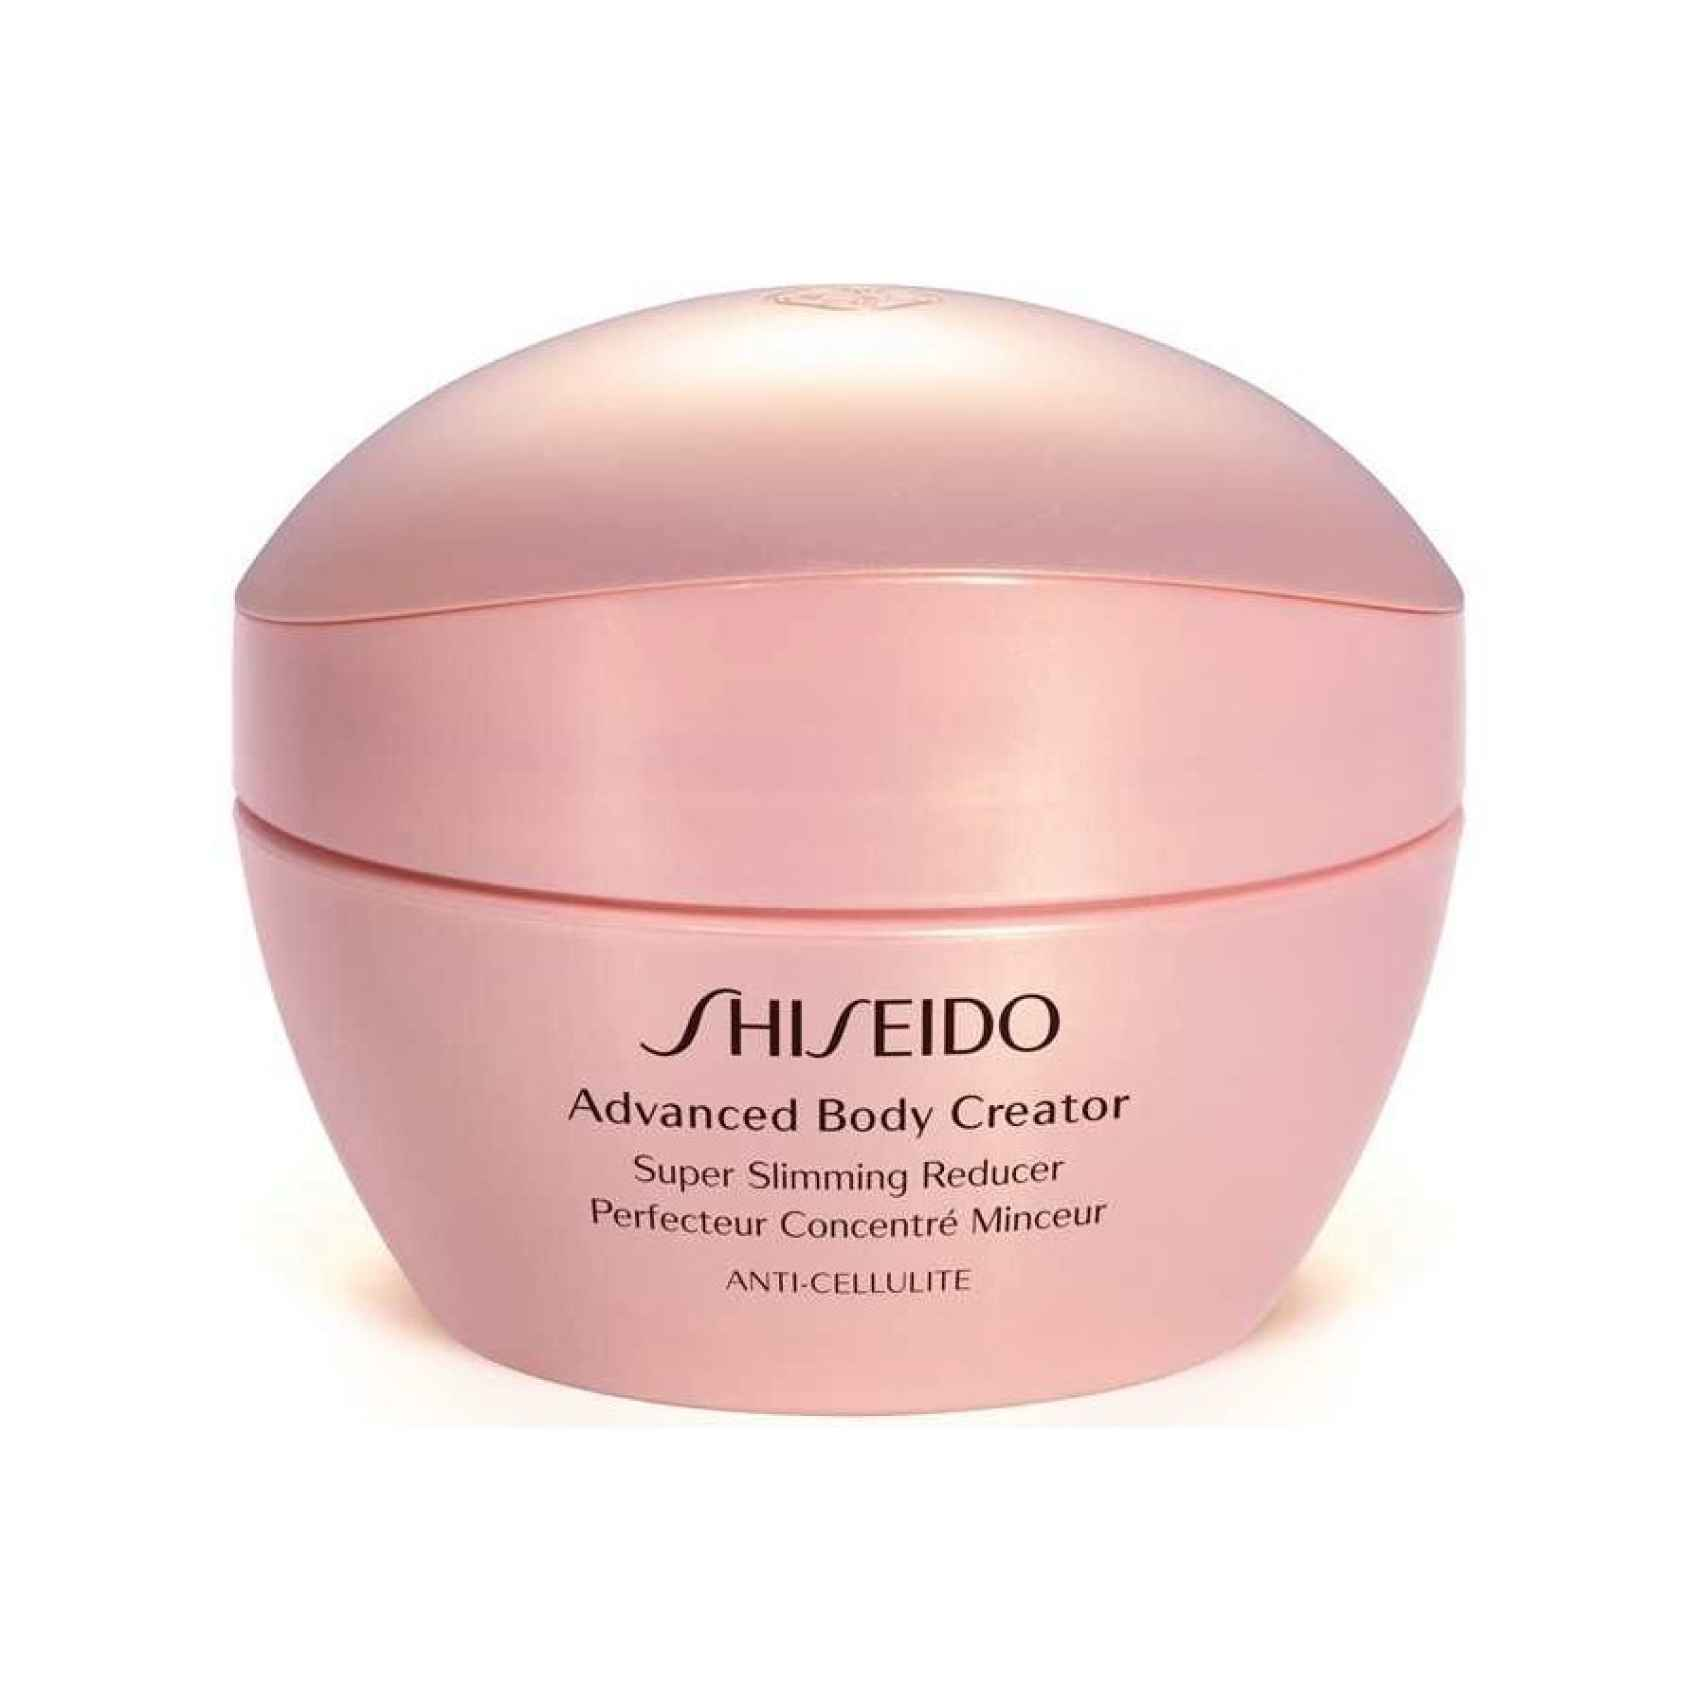 Shiseido Corporal Body Creator Super Sliming Reducer.